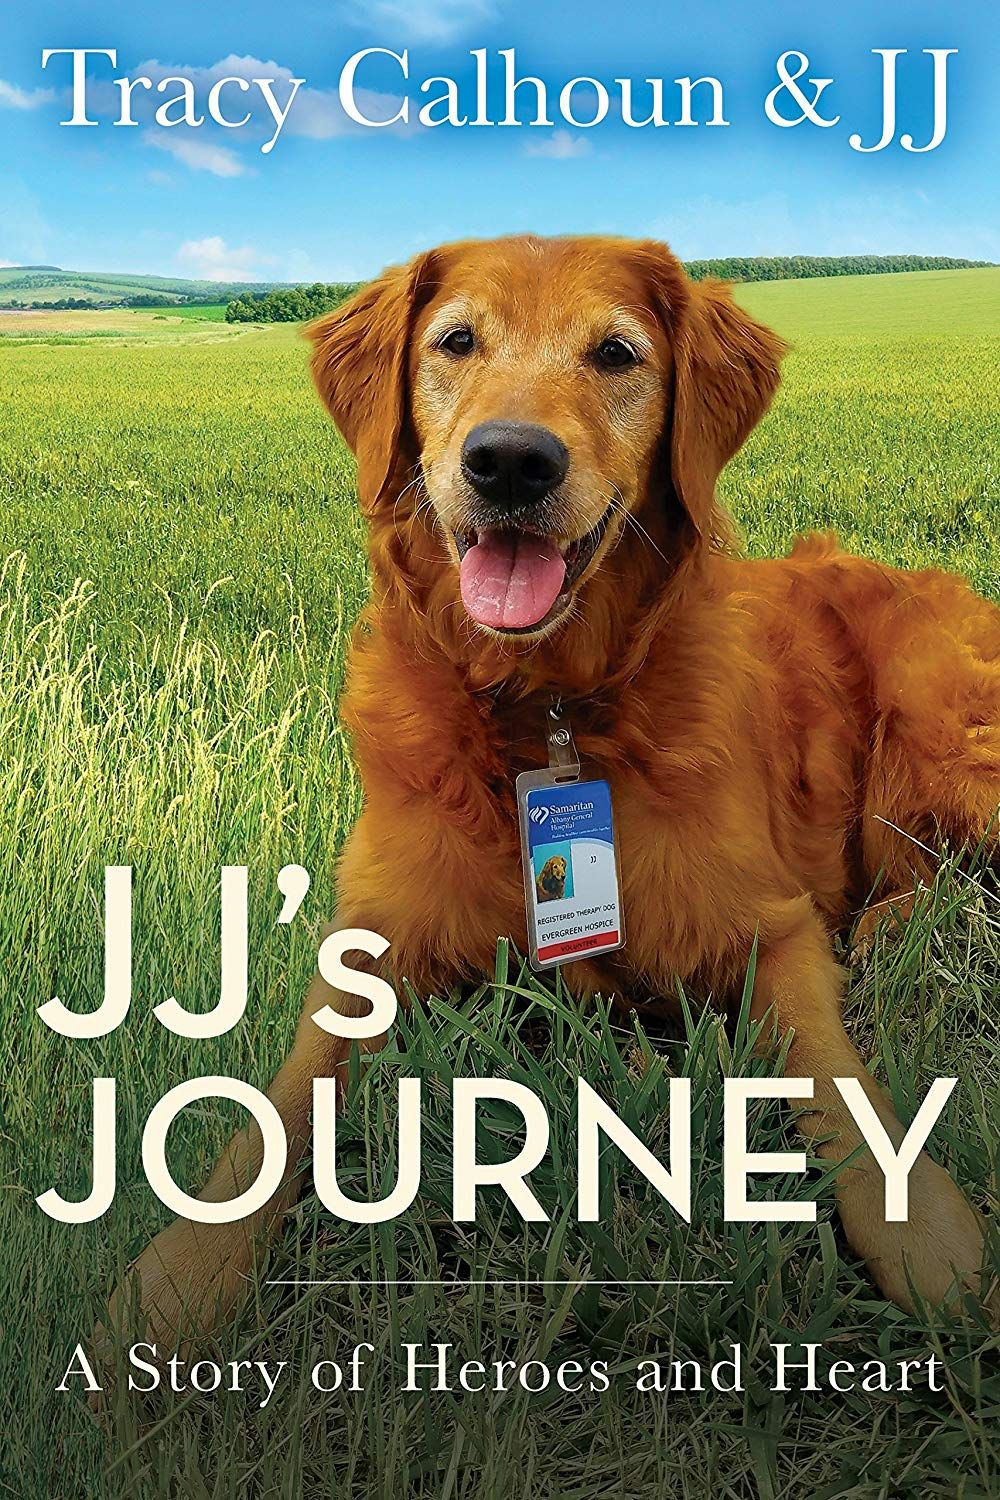 Jj S Journey A Story Of Heroes And Heart Ebook Tracy Calhoun Jj